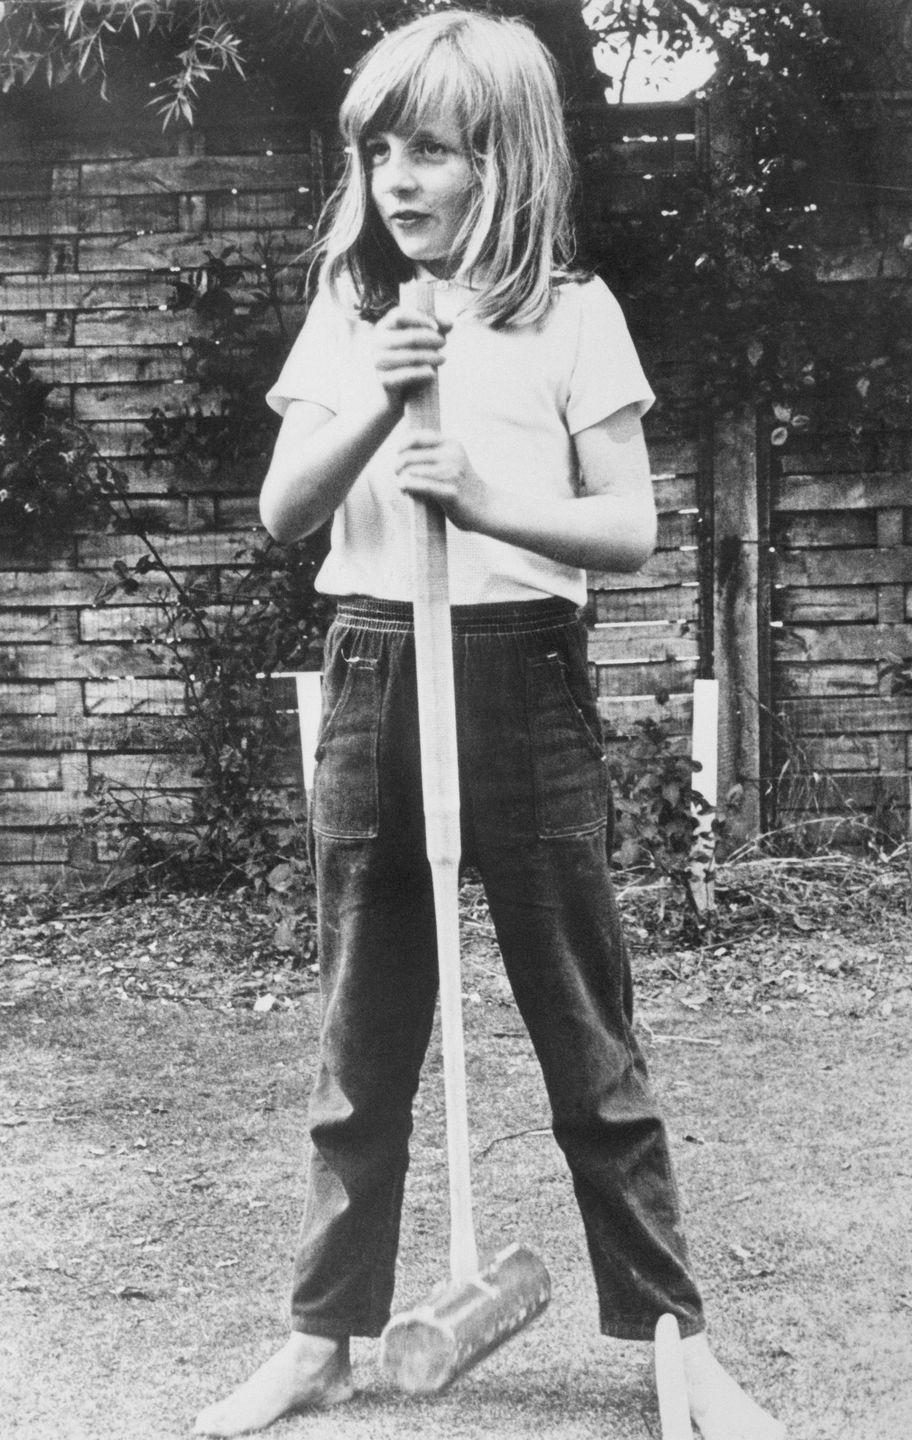 <p>A barefoot Diana poses with a croquet mallet while on holiday in Itchenor, West Sussex.</p>